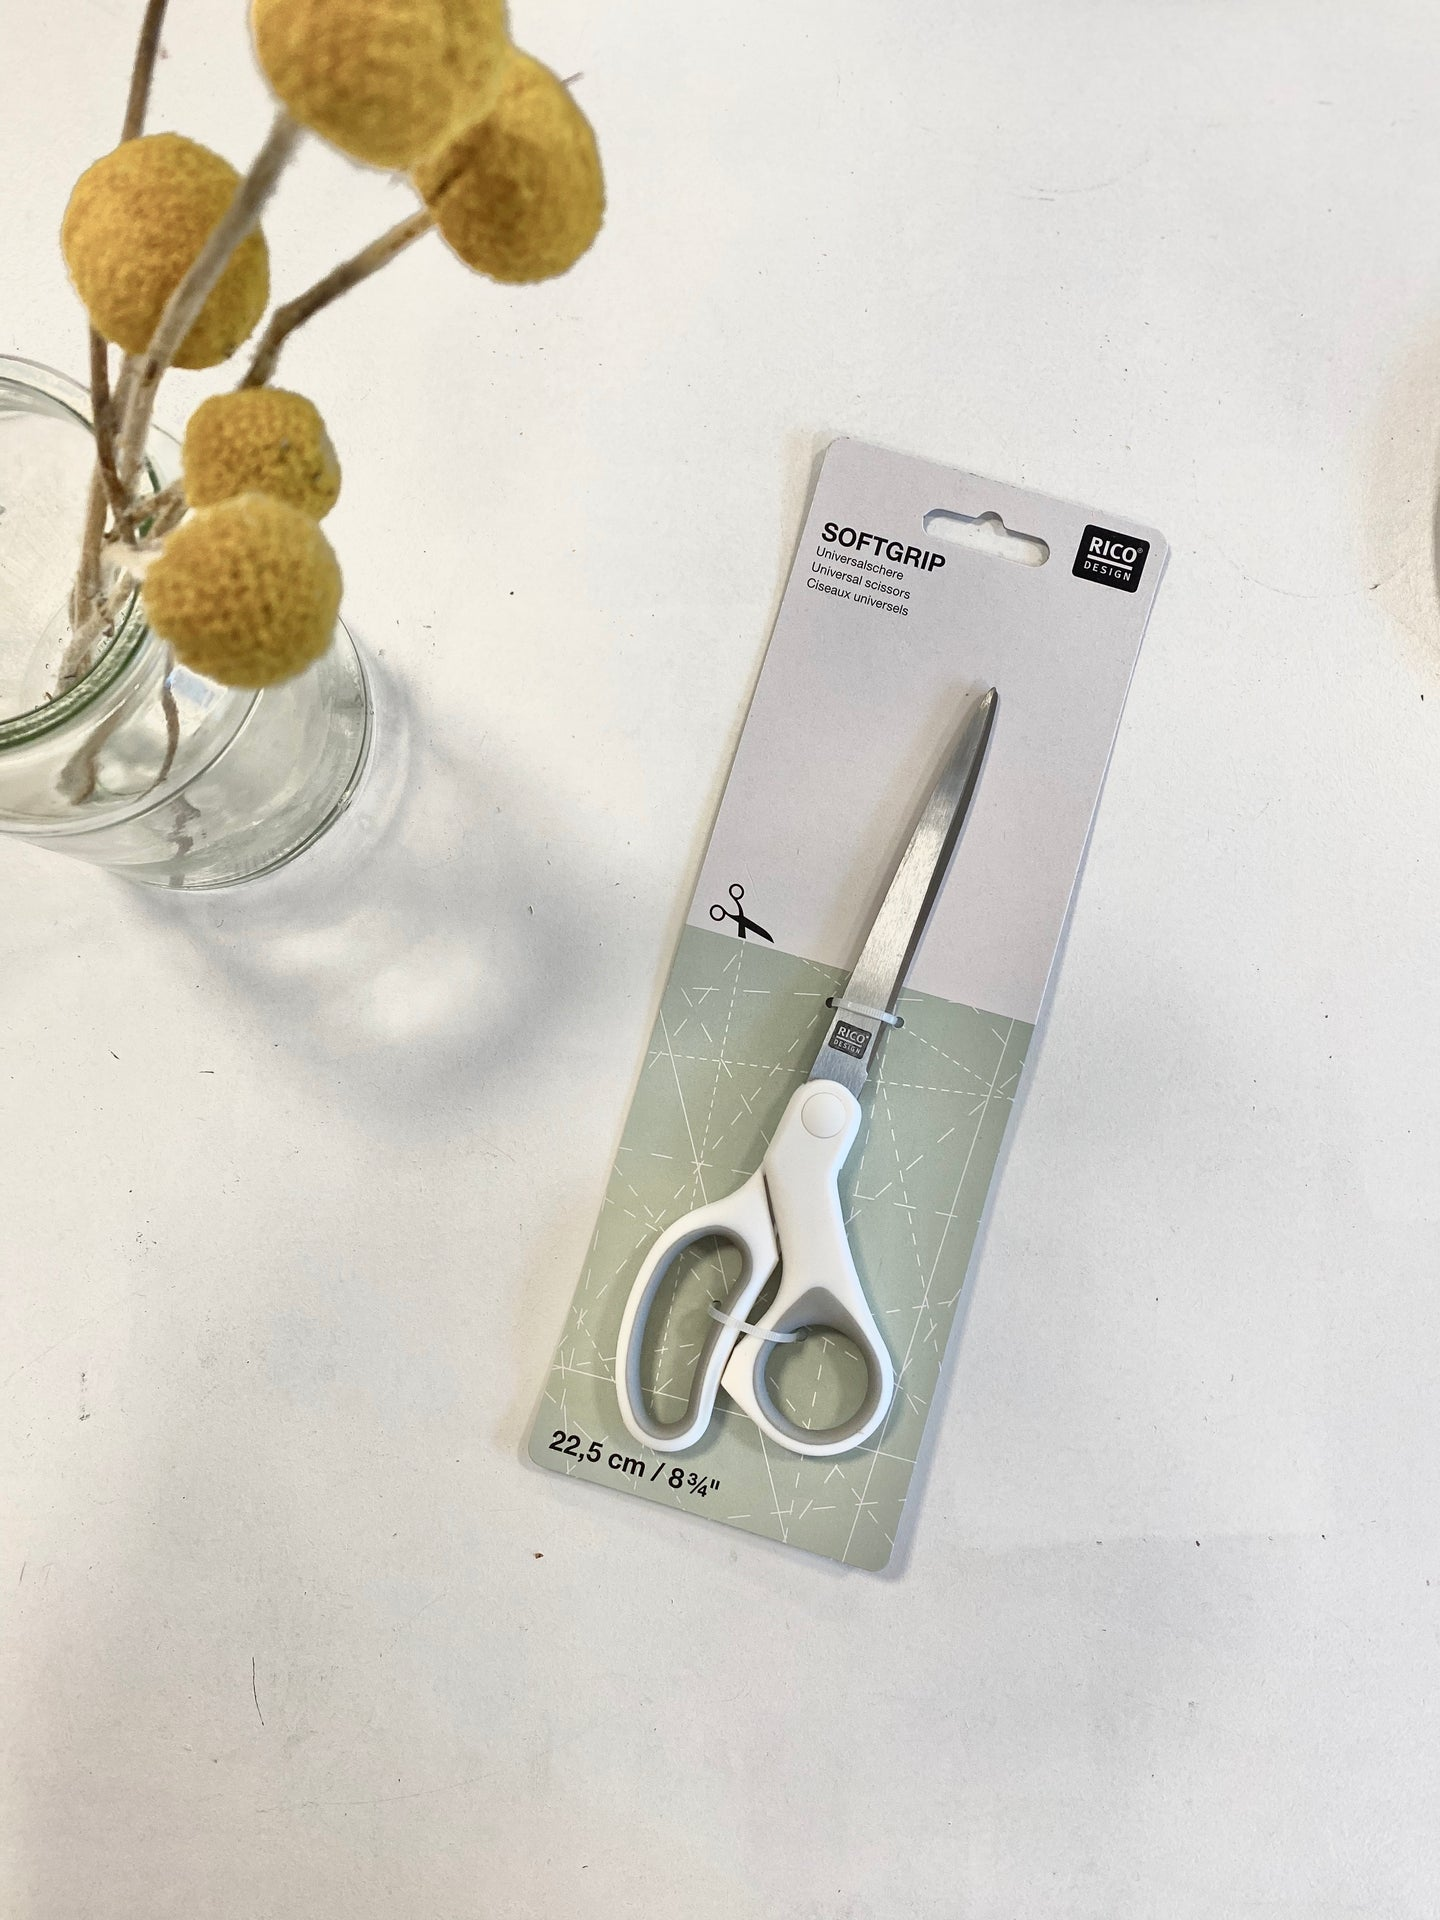 Fabric Scissors - Supplies